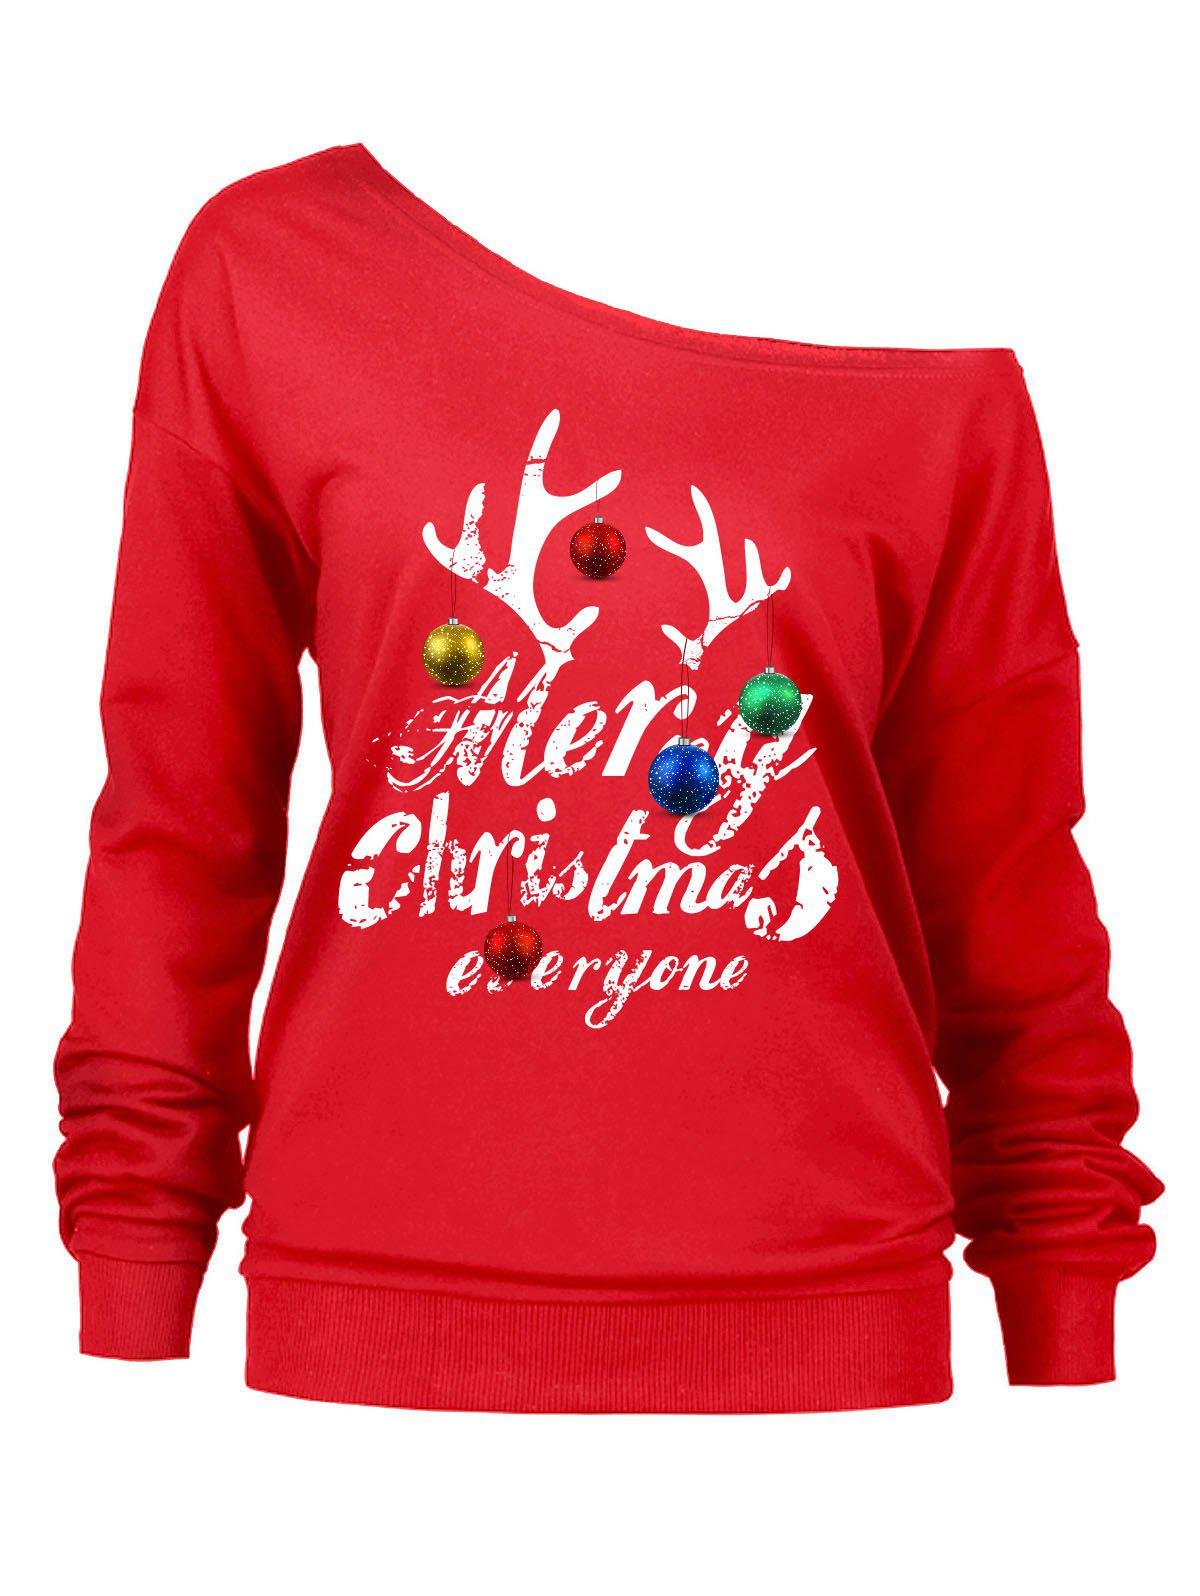 Christmas Letters Bells Print Skew Neck SweatshirtWOMEN<br><br>Size: XL; Color: RED; Material: Polyester; Shirt Length: Regular; Sleeve Length: Full; Style: Fashion; Pattern Style: Letter,Print; Season: Fall,Spring,Winter; Weight: 0.3600kg; Package Contents: 1 x Sweatshirt;